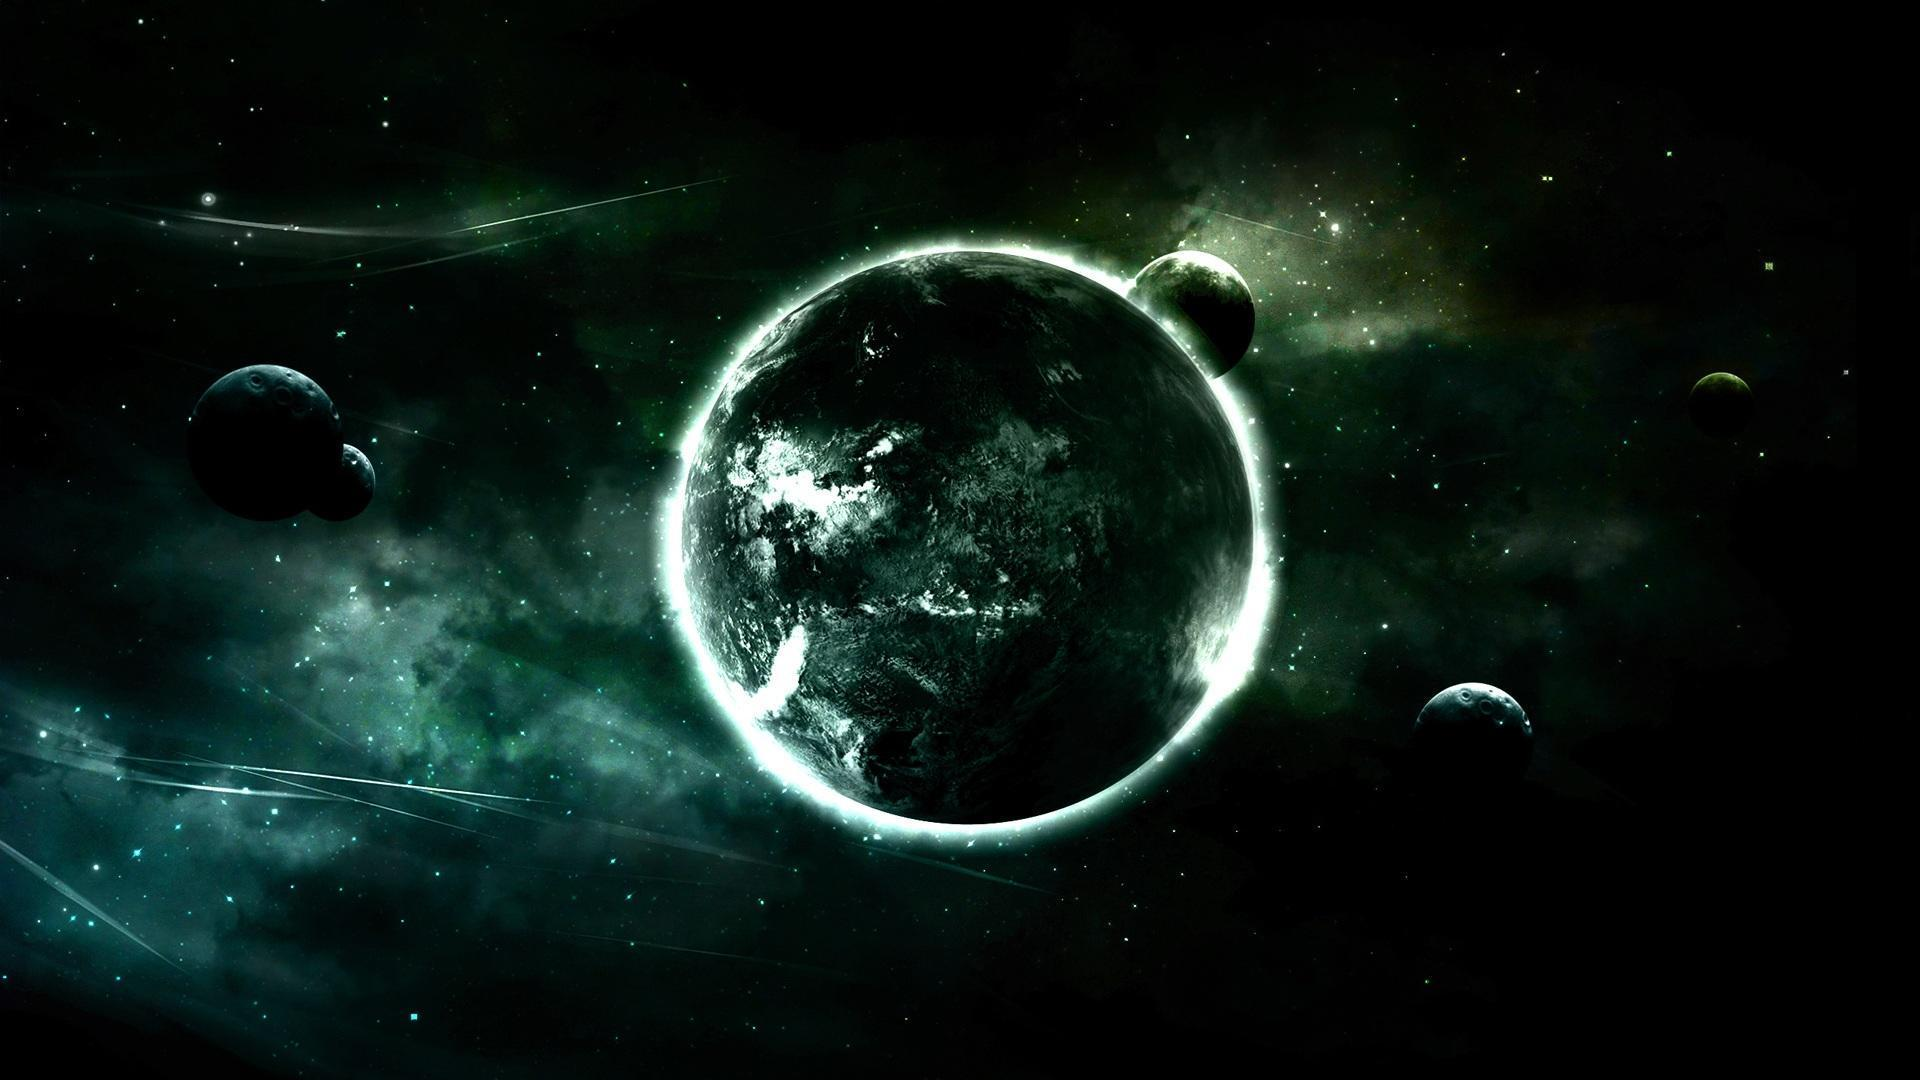 green outer space planets tone Wallpaper 1920x1080   Hot HD Wallpaper